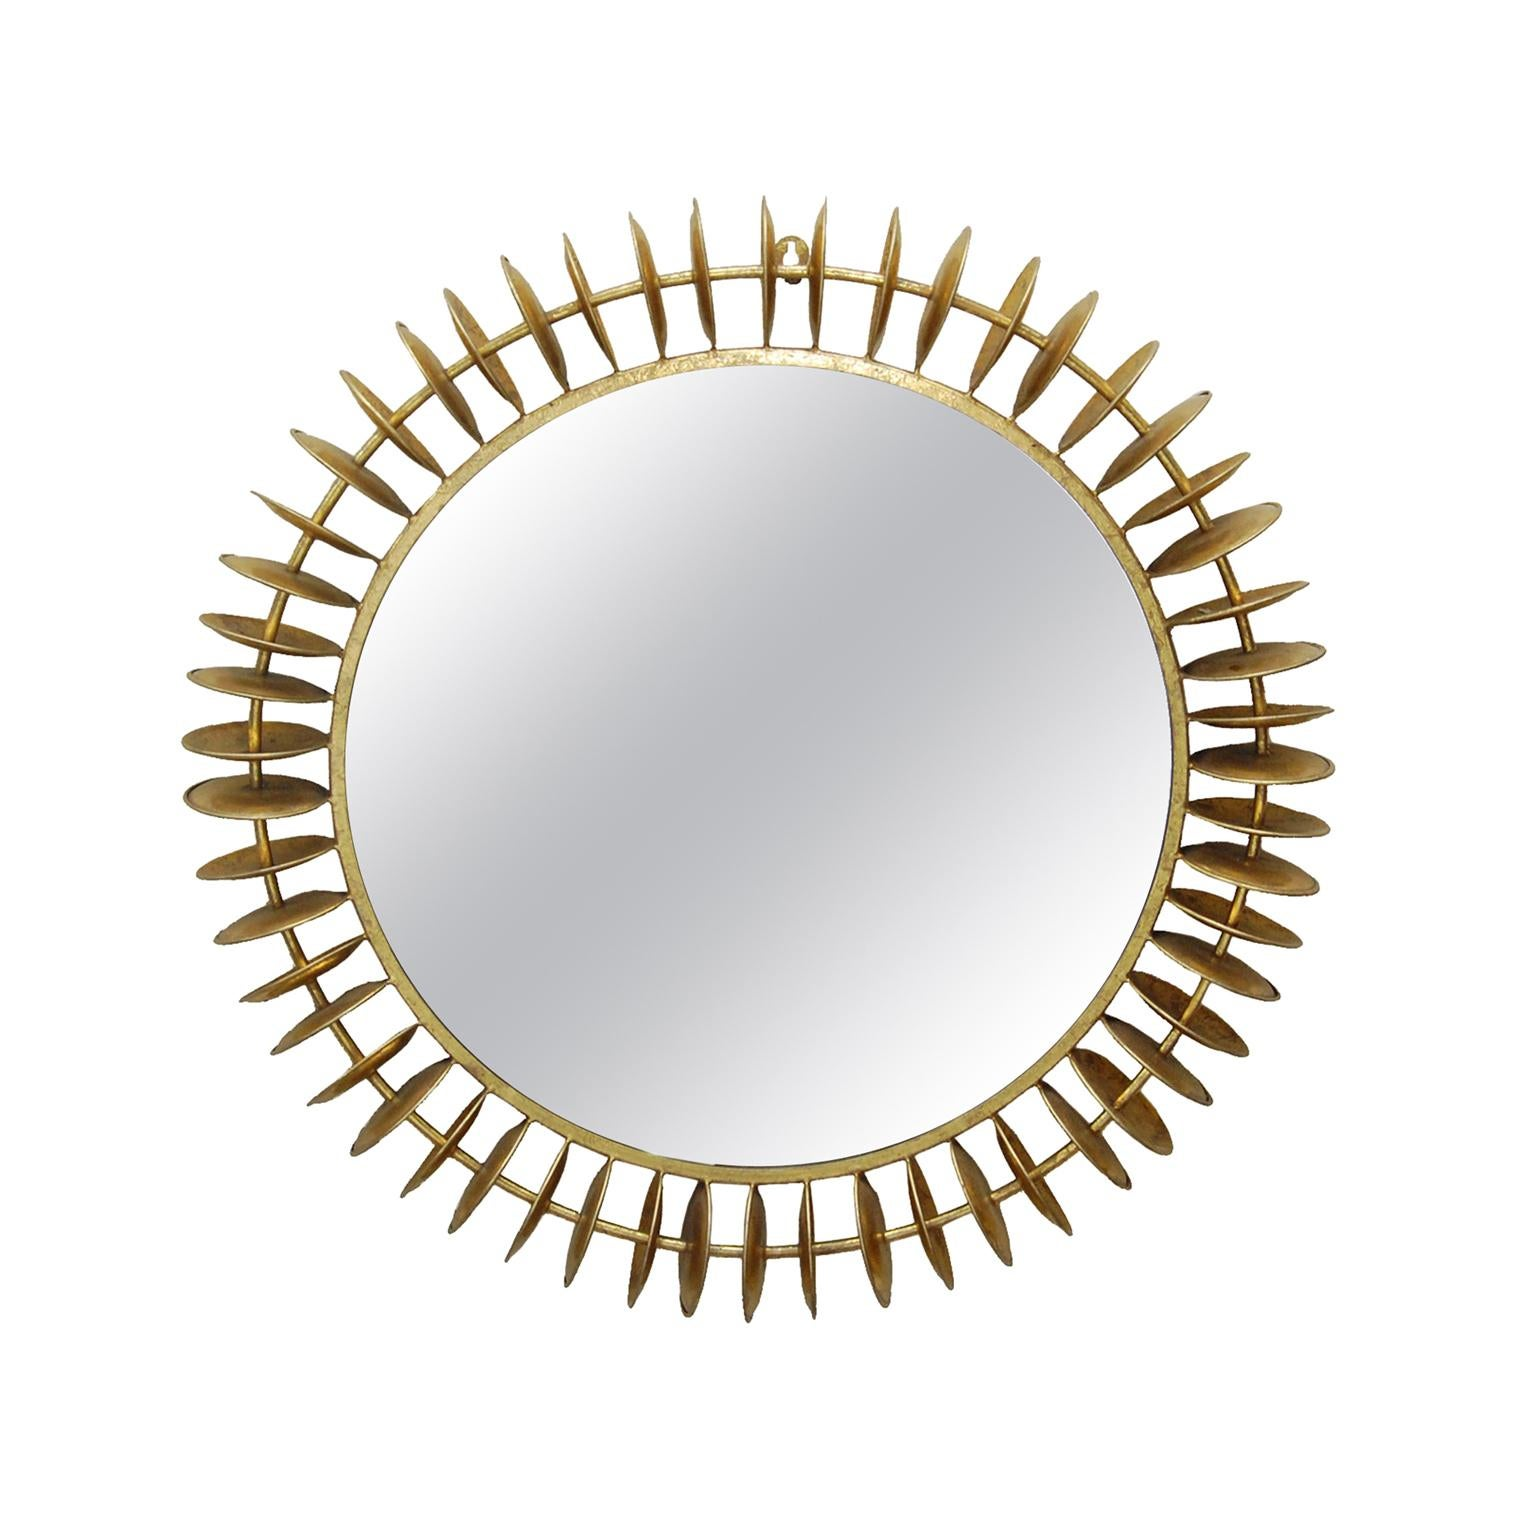 Greg Mirror in Gold Leaf by CuratedKravet